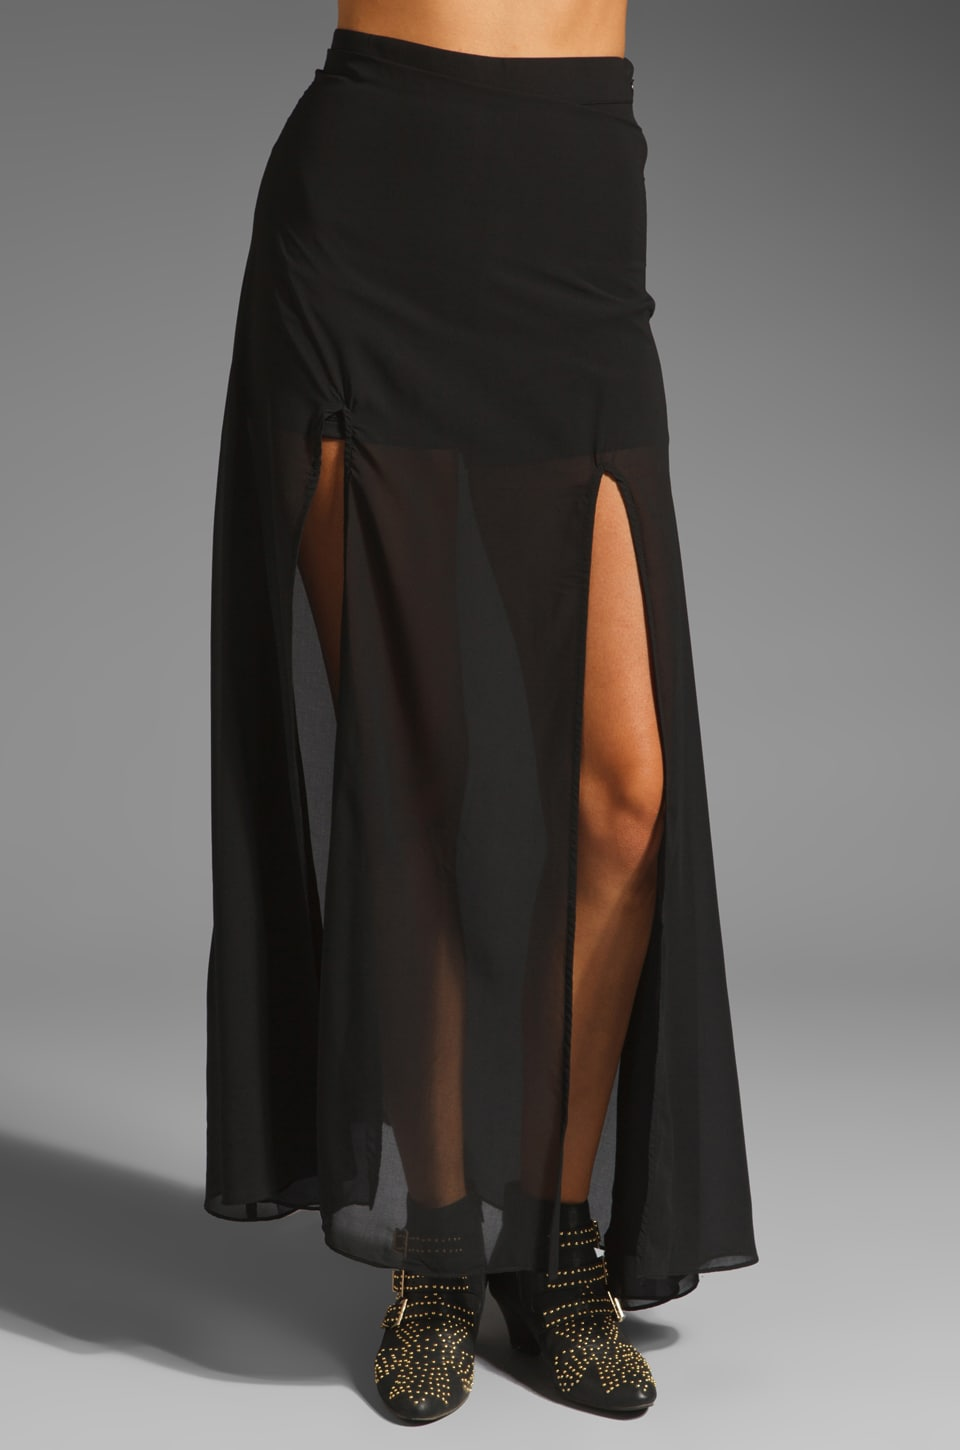 Lovers + Friends One and Only Maxi Skirt in Black